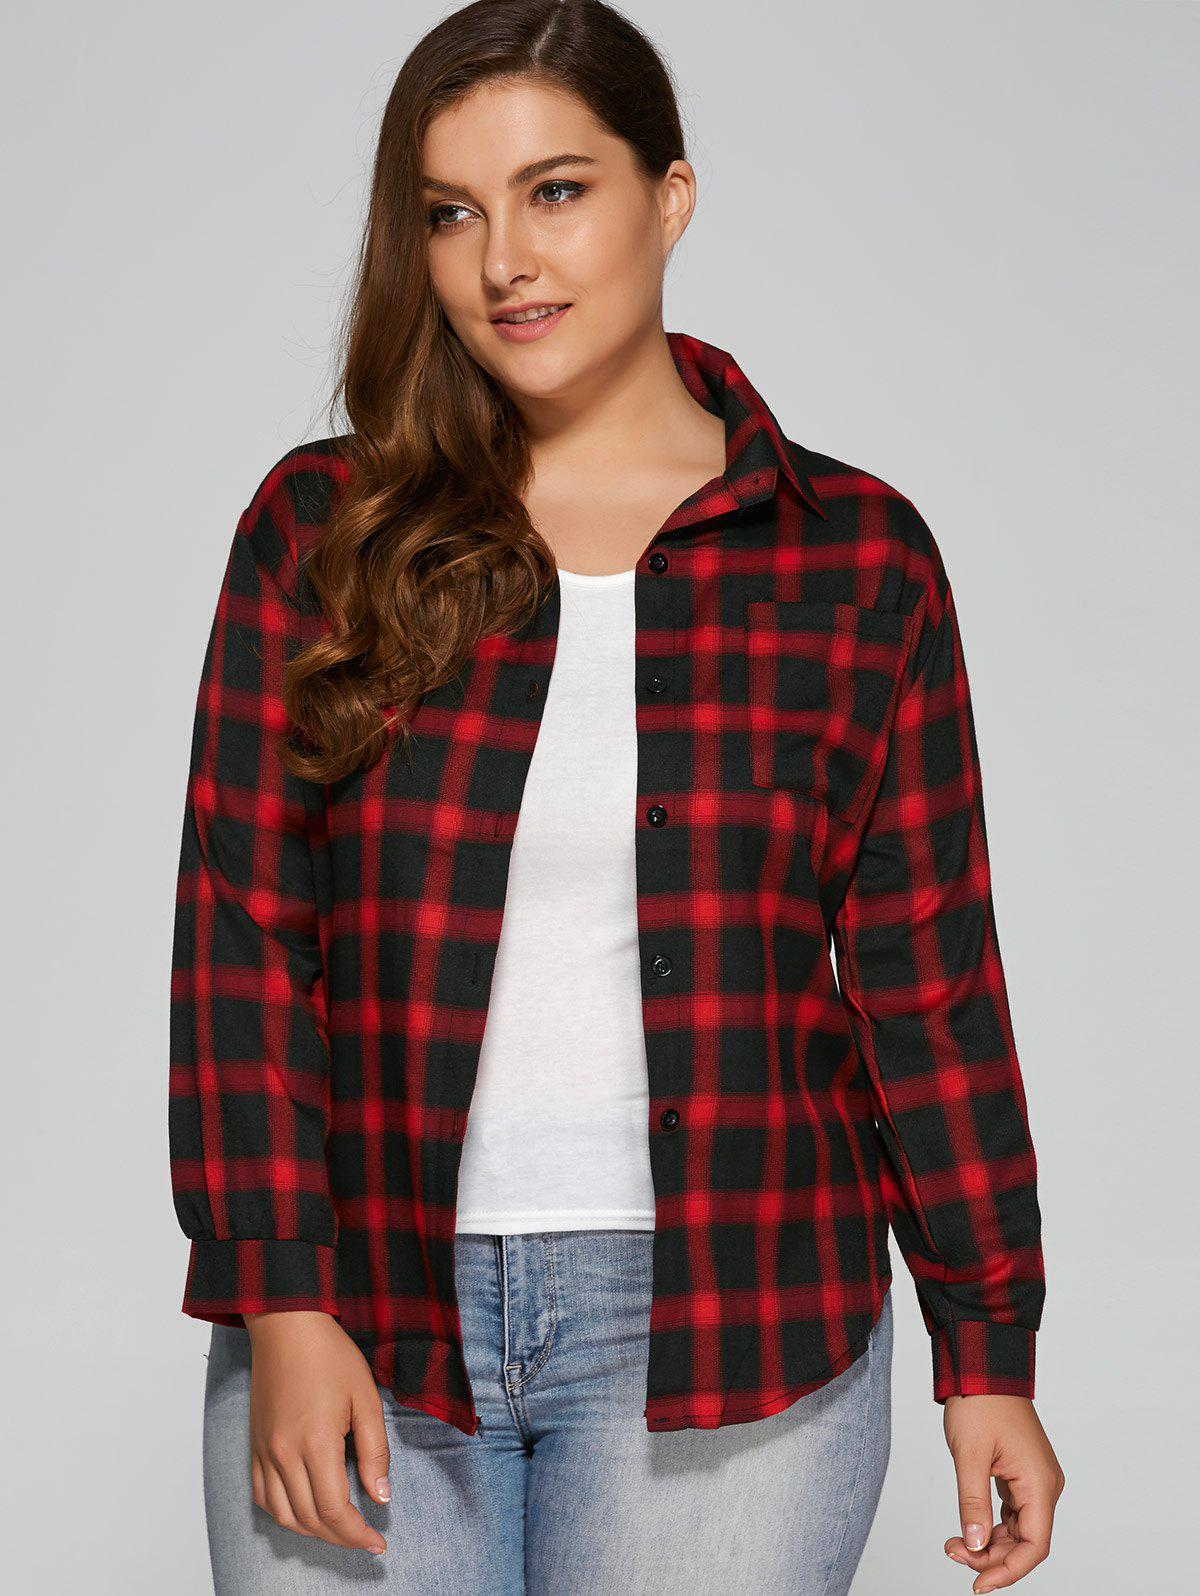 Wine red flannel plus size plaid shirt for Plus size plaid flannel shirt